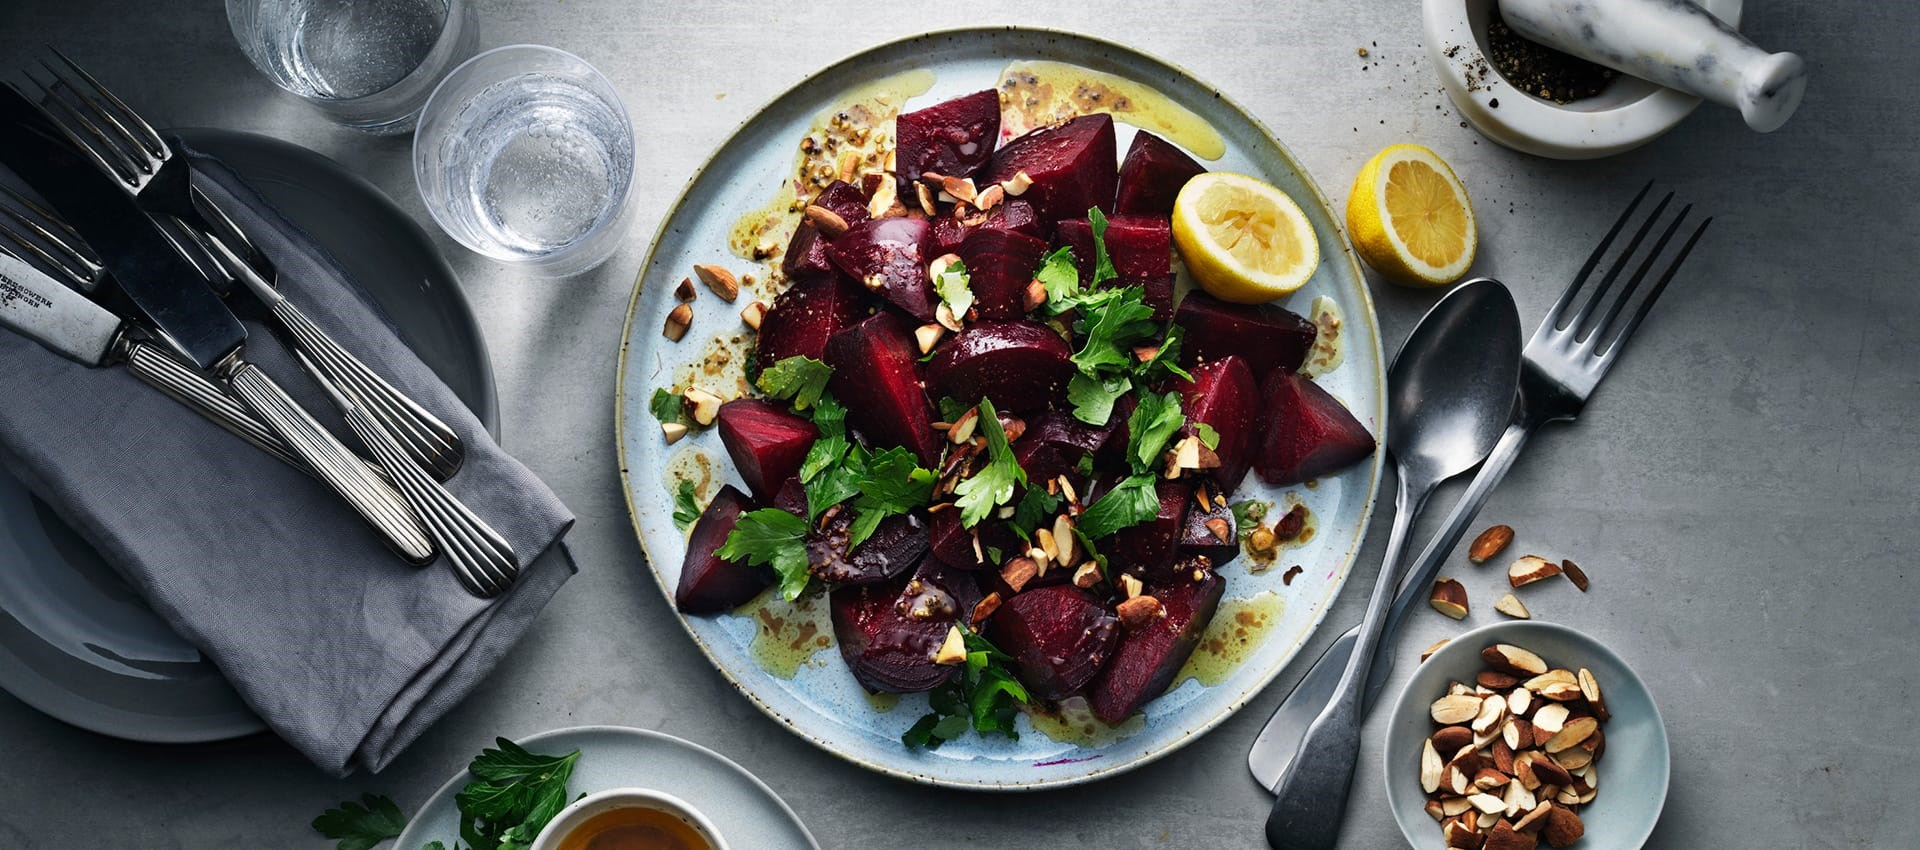 Beetroots with browned spicy butter topped with roasted almonds